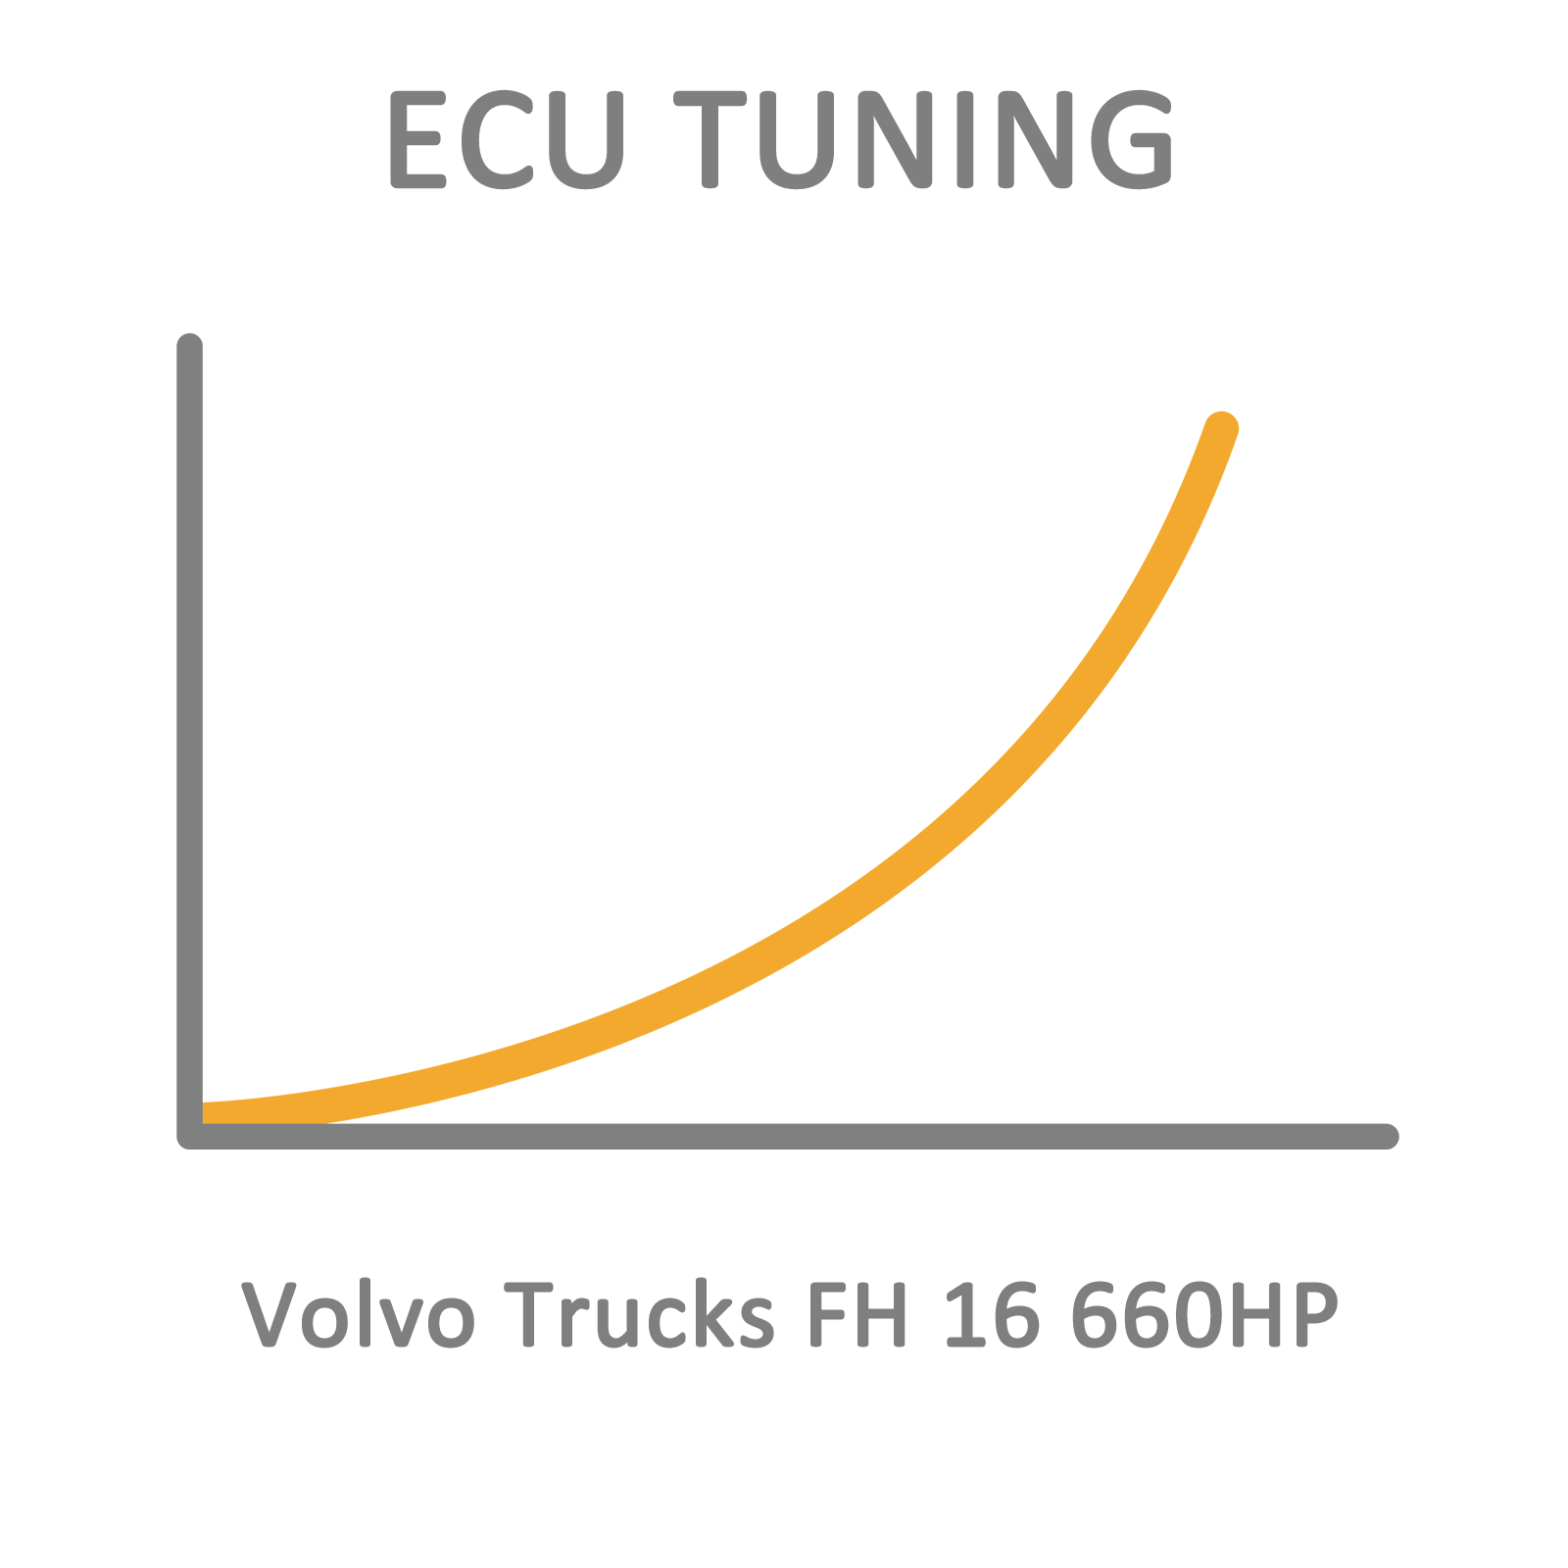 Volvo Trucks FH 16 660HP ECU Tuning Remapping Programming